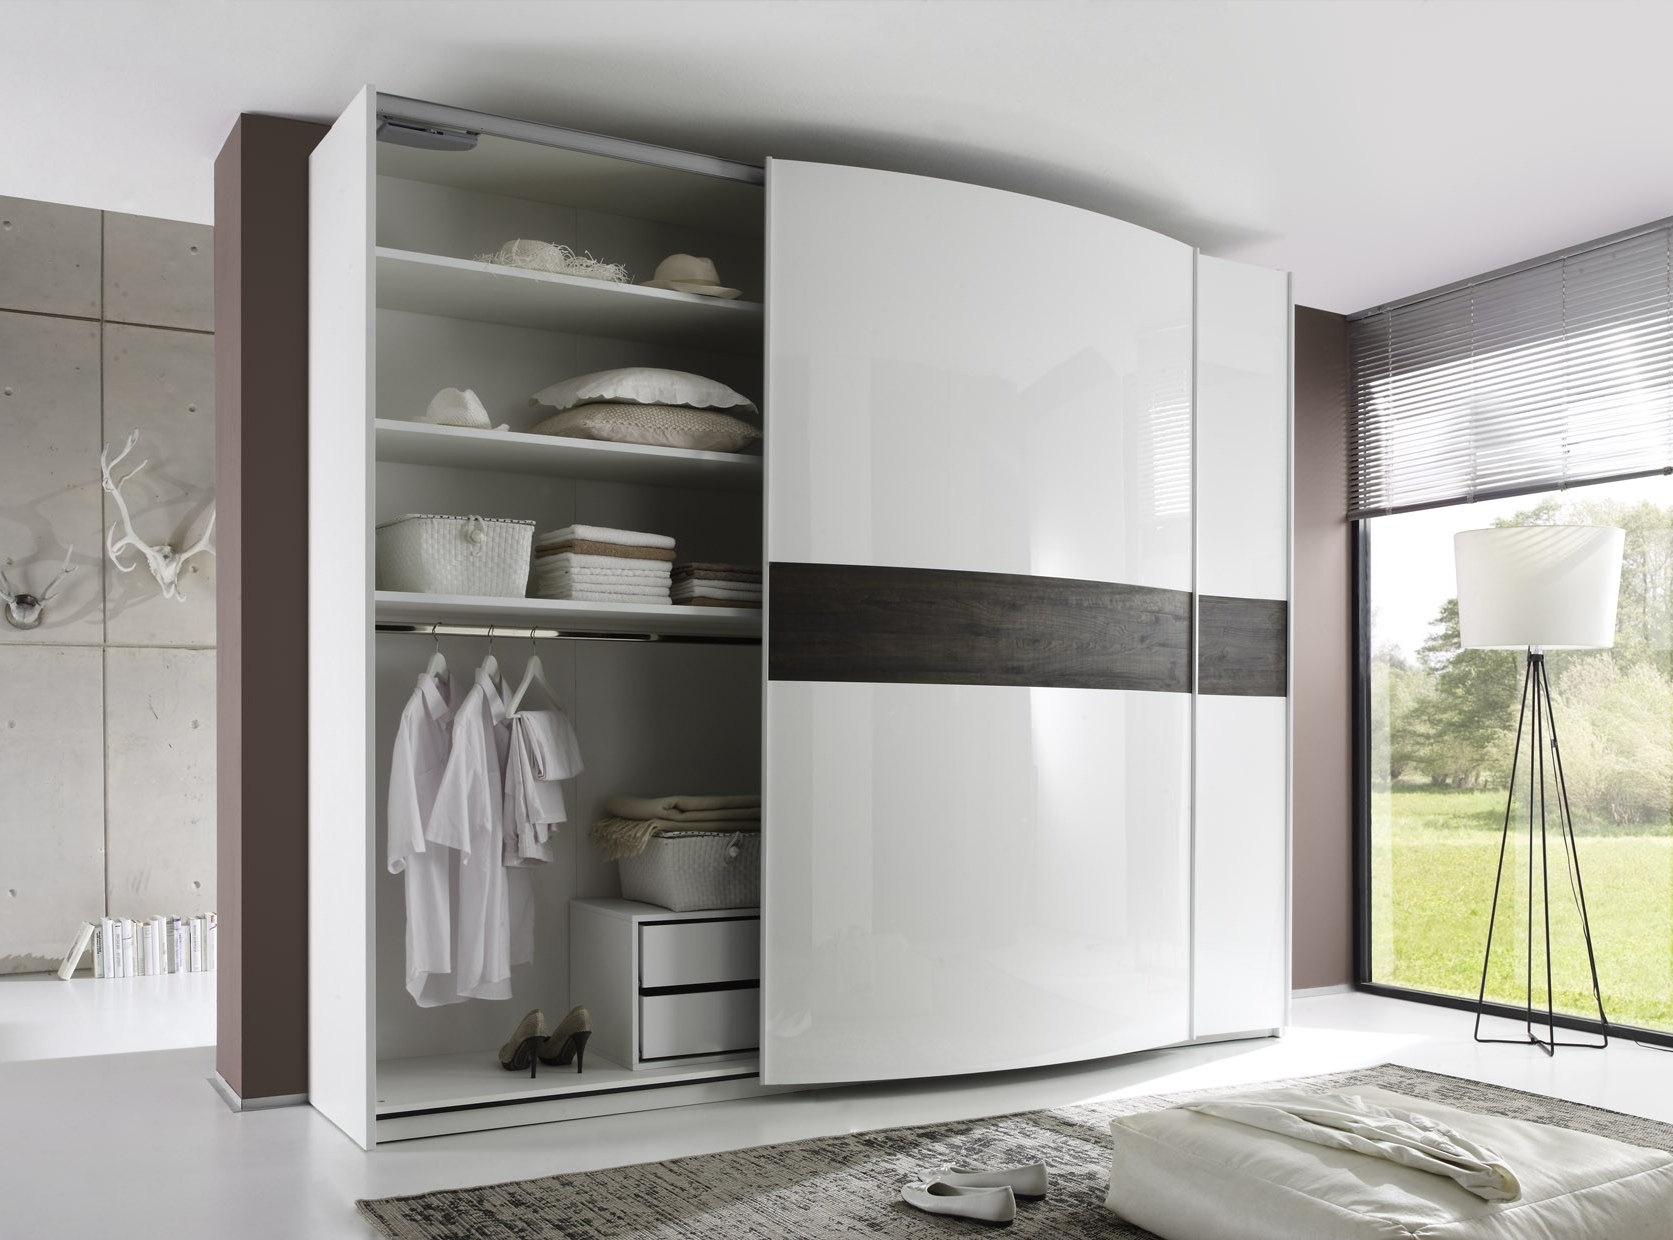 Tambura Curved Sliding Doors Wardrobe, White + Wenge Buy Online At Pertaining To Most Recent Curved Wardrobes Doors (View 13 of 15)